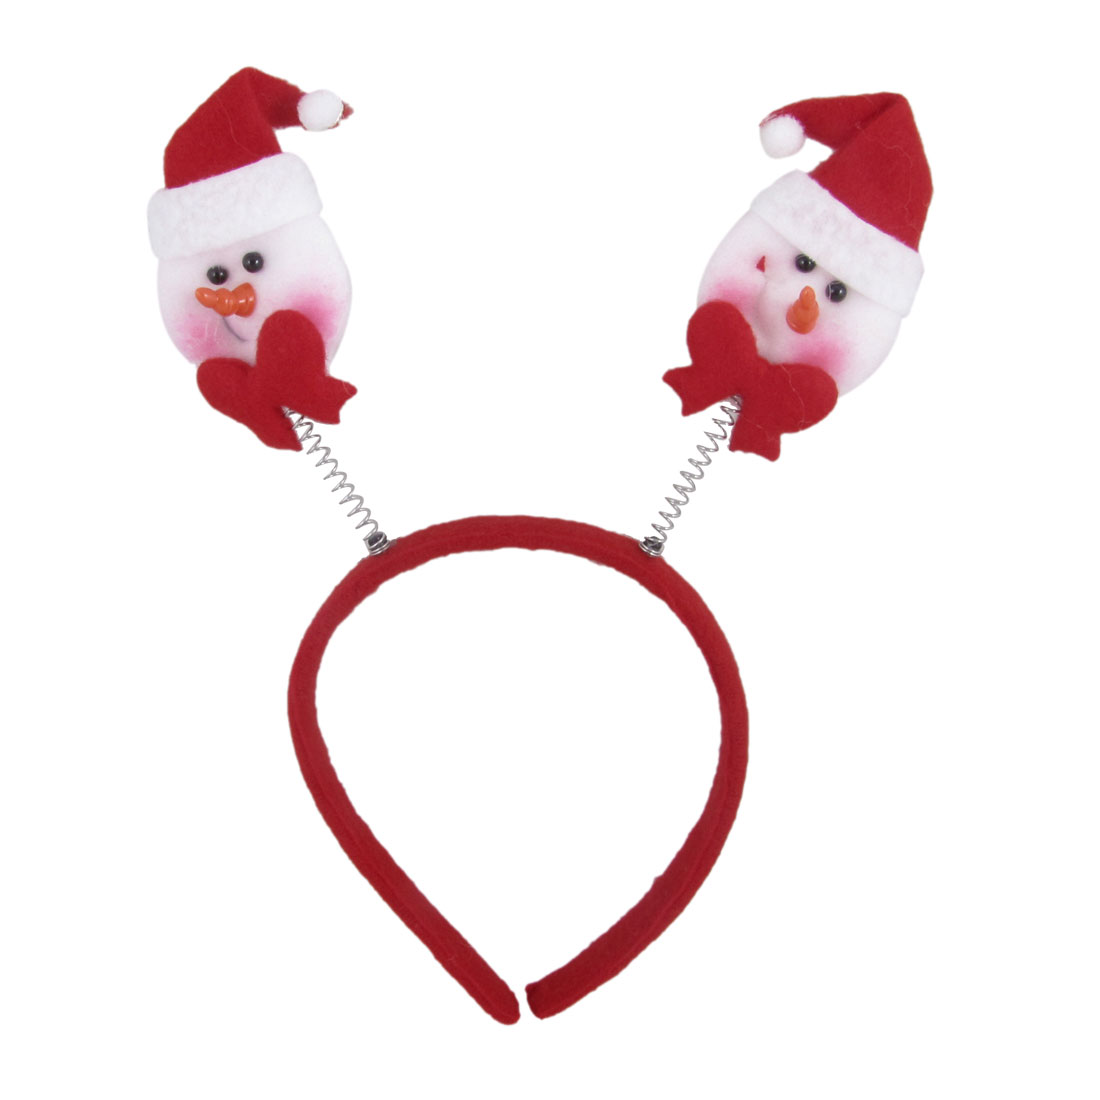 Christmas Xmas Red White Santa Claus Design Flannel Coated Hairband for Children